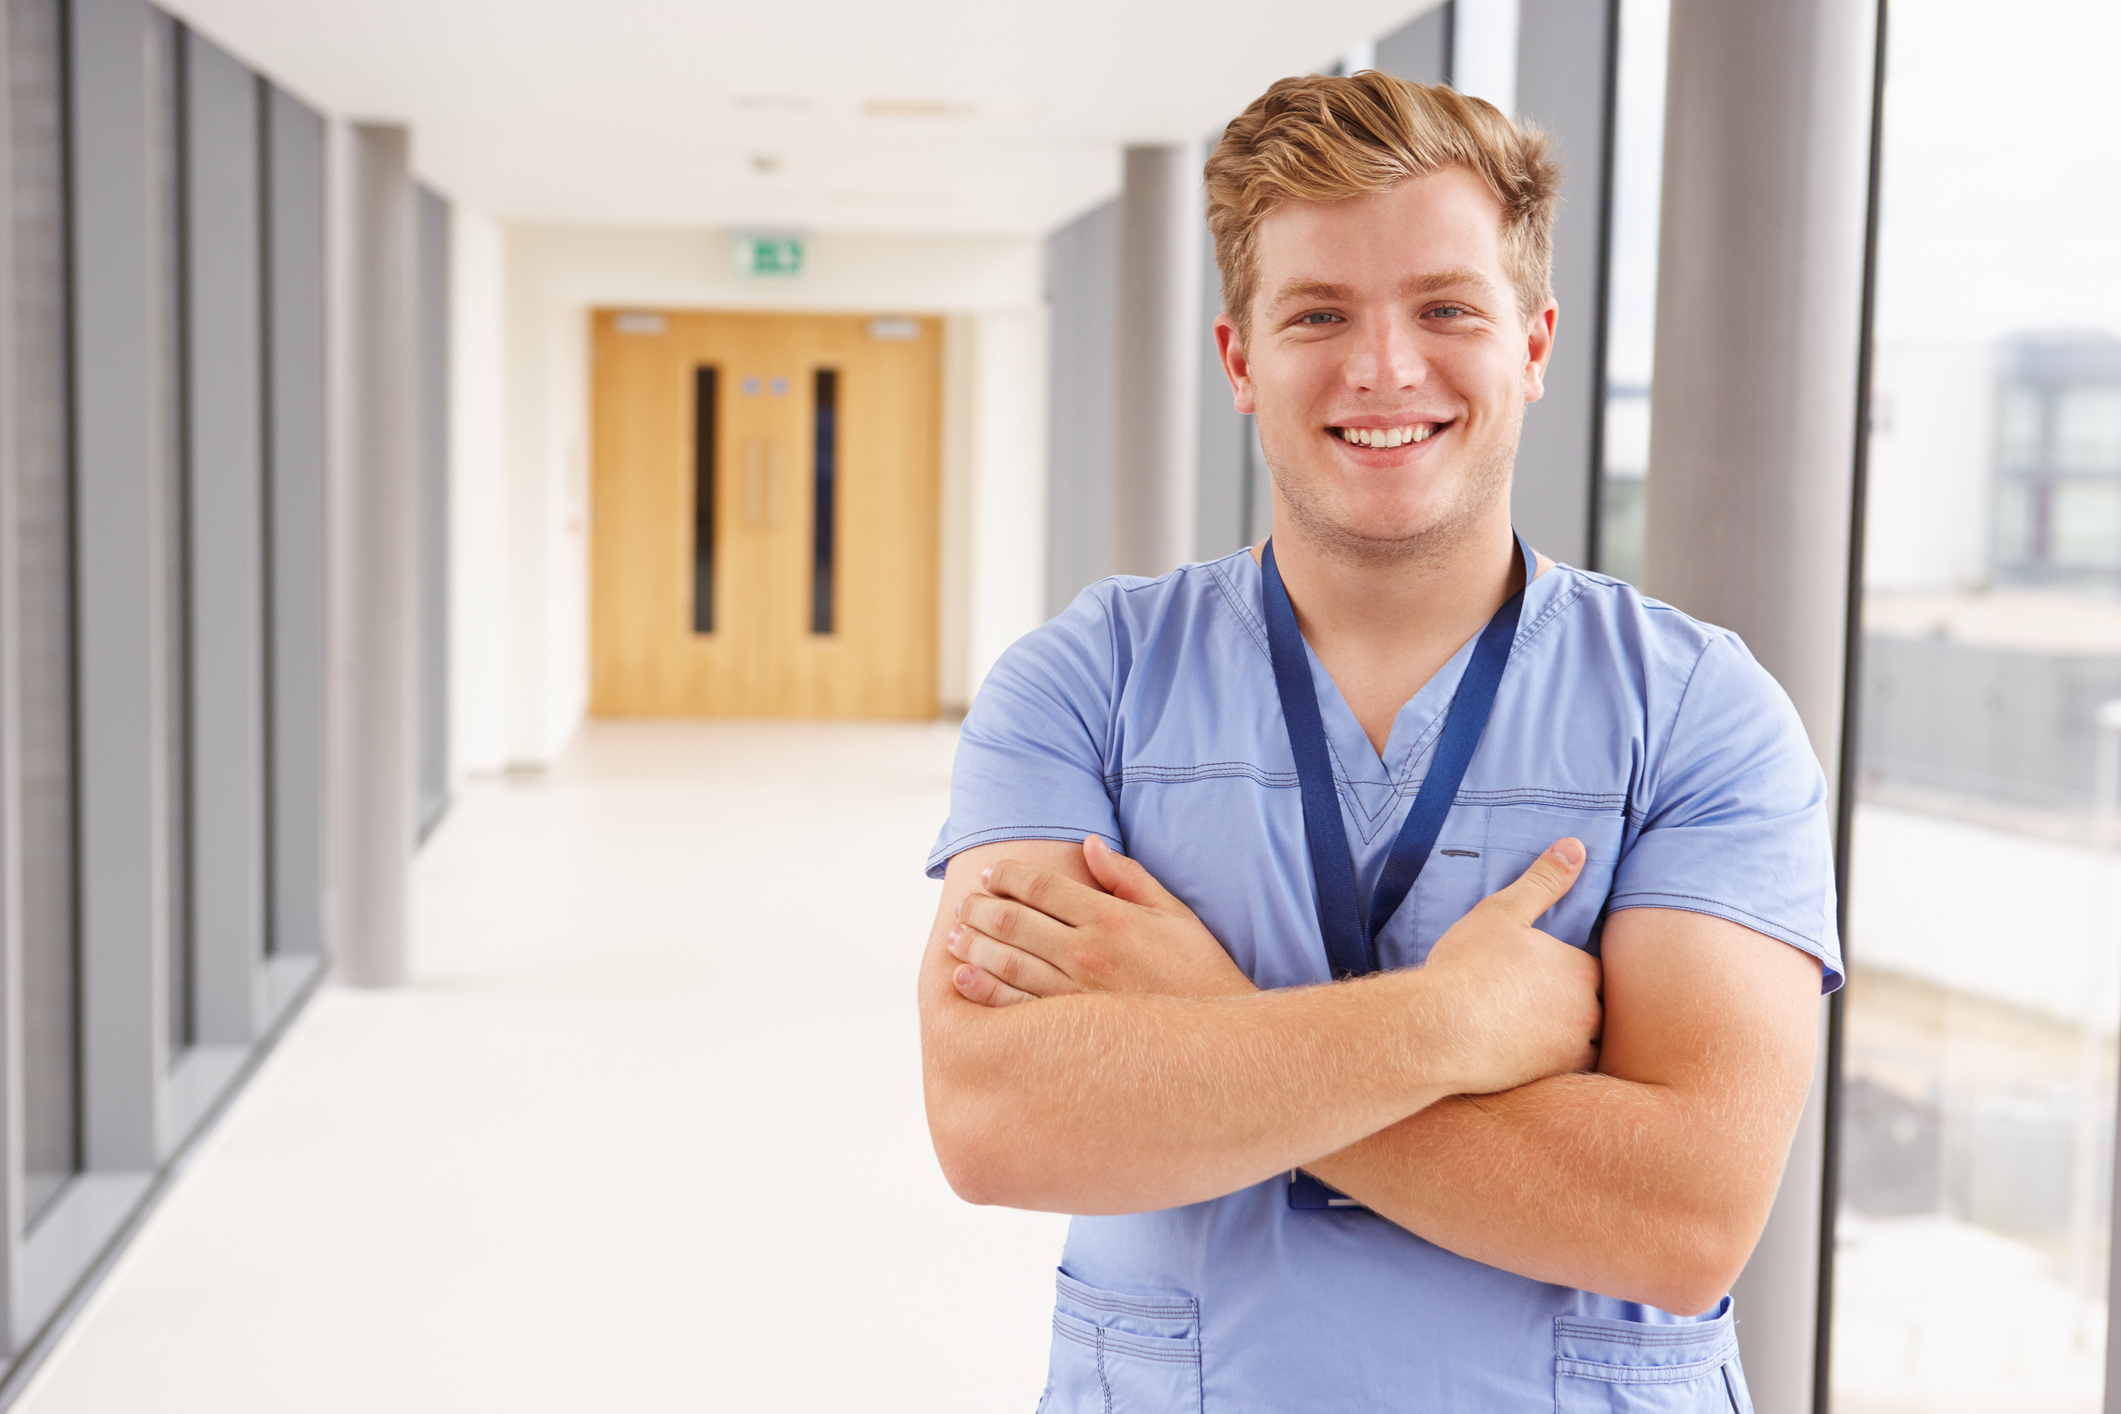 Portrait Of Male Nurse Standing In Hospital Corridor